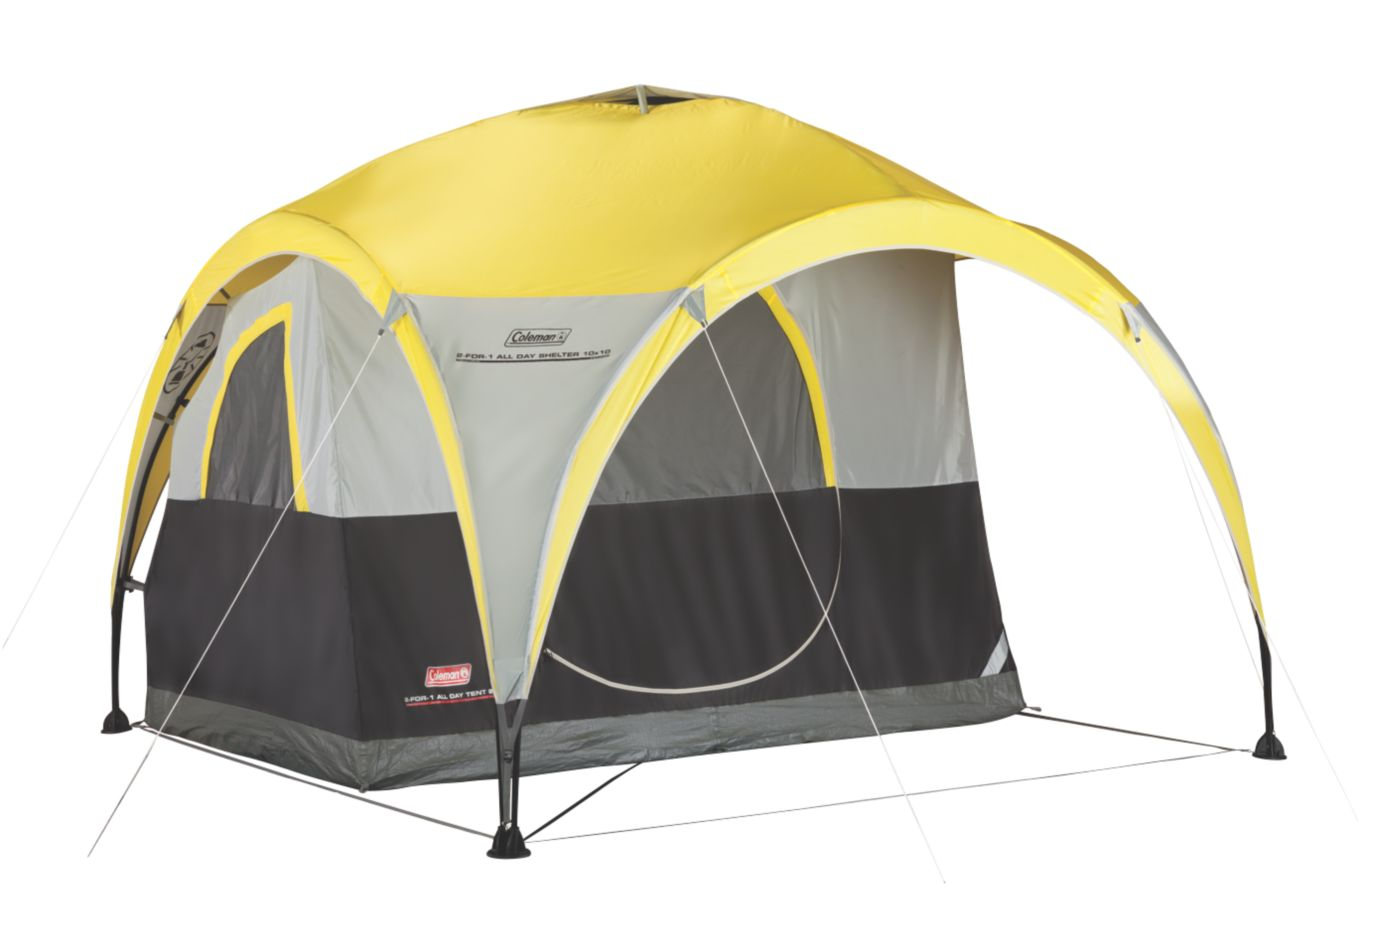 2-For-1 All Day 2-Person Shelter u0026 Tent  sc 1 st  Coleman & 2 Person Dome Tent | Coleman Tents | Coleman